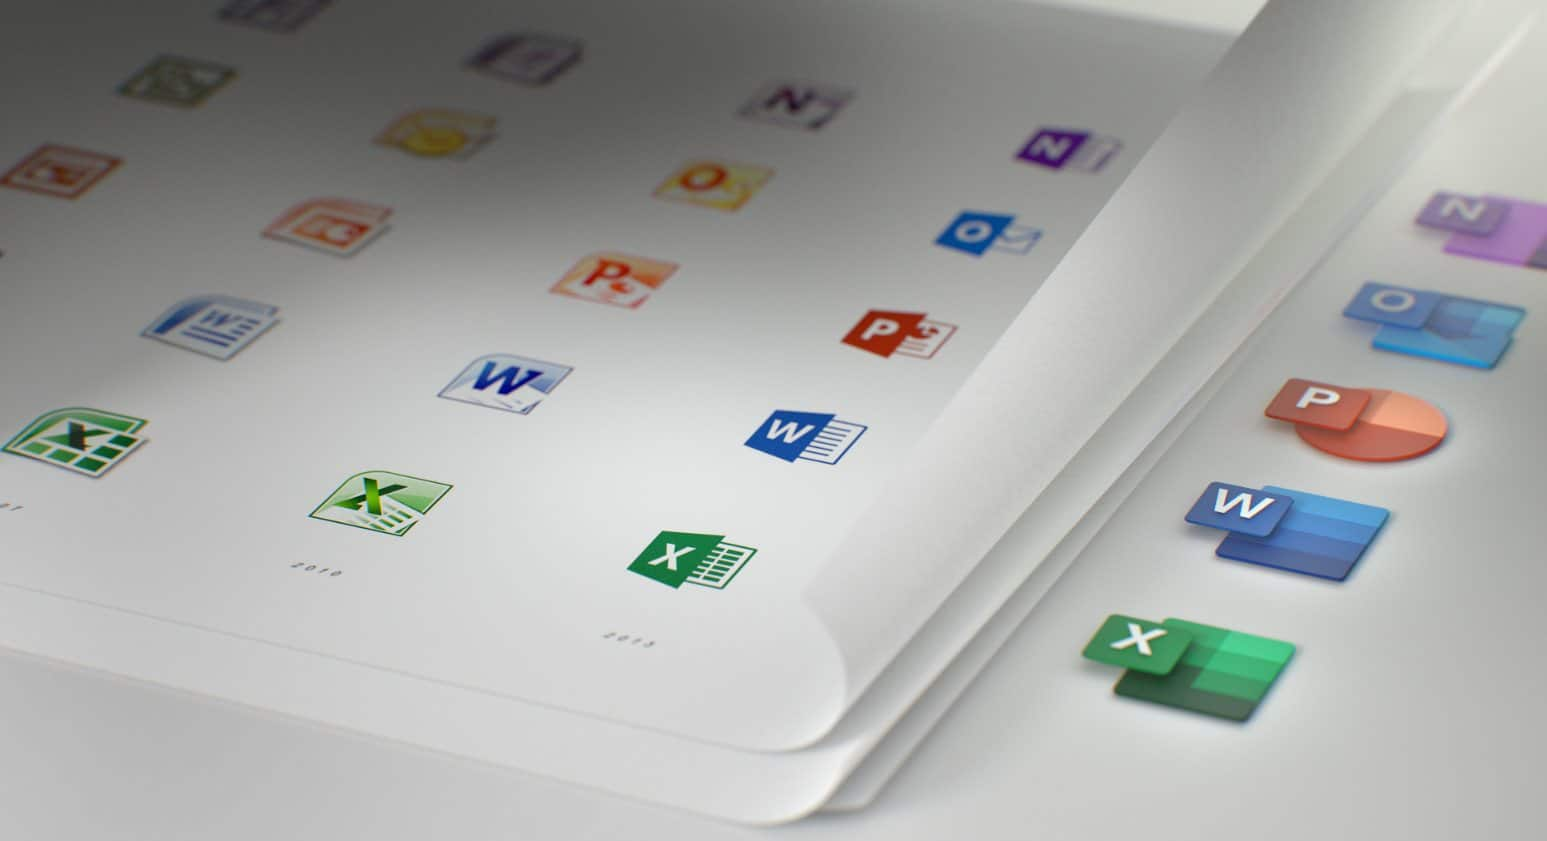 Microsoft introduced a completely new icons for Office